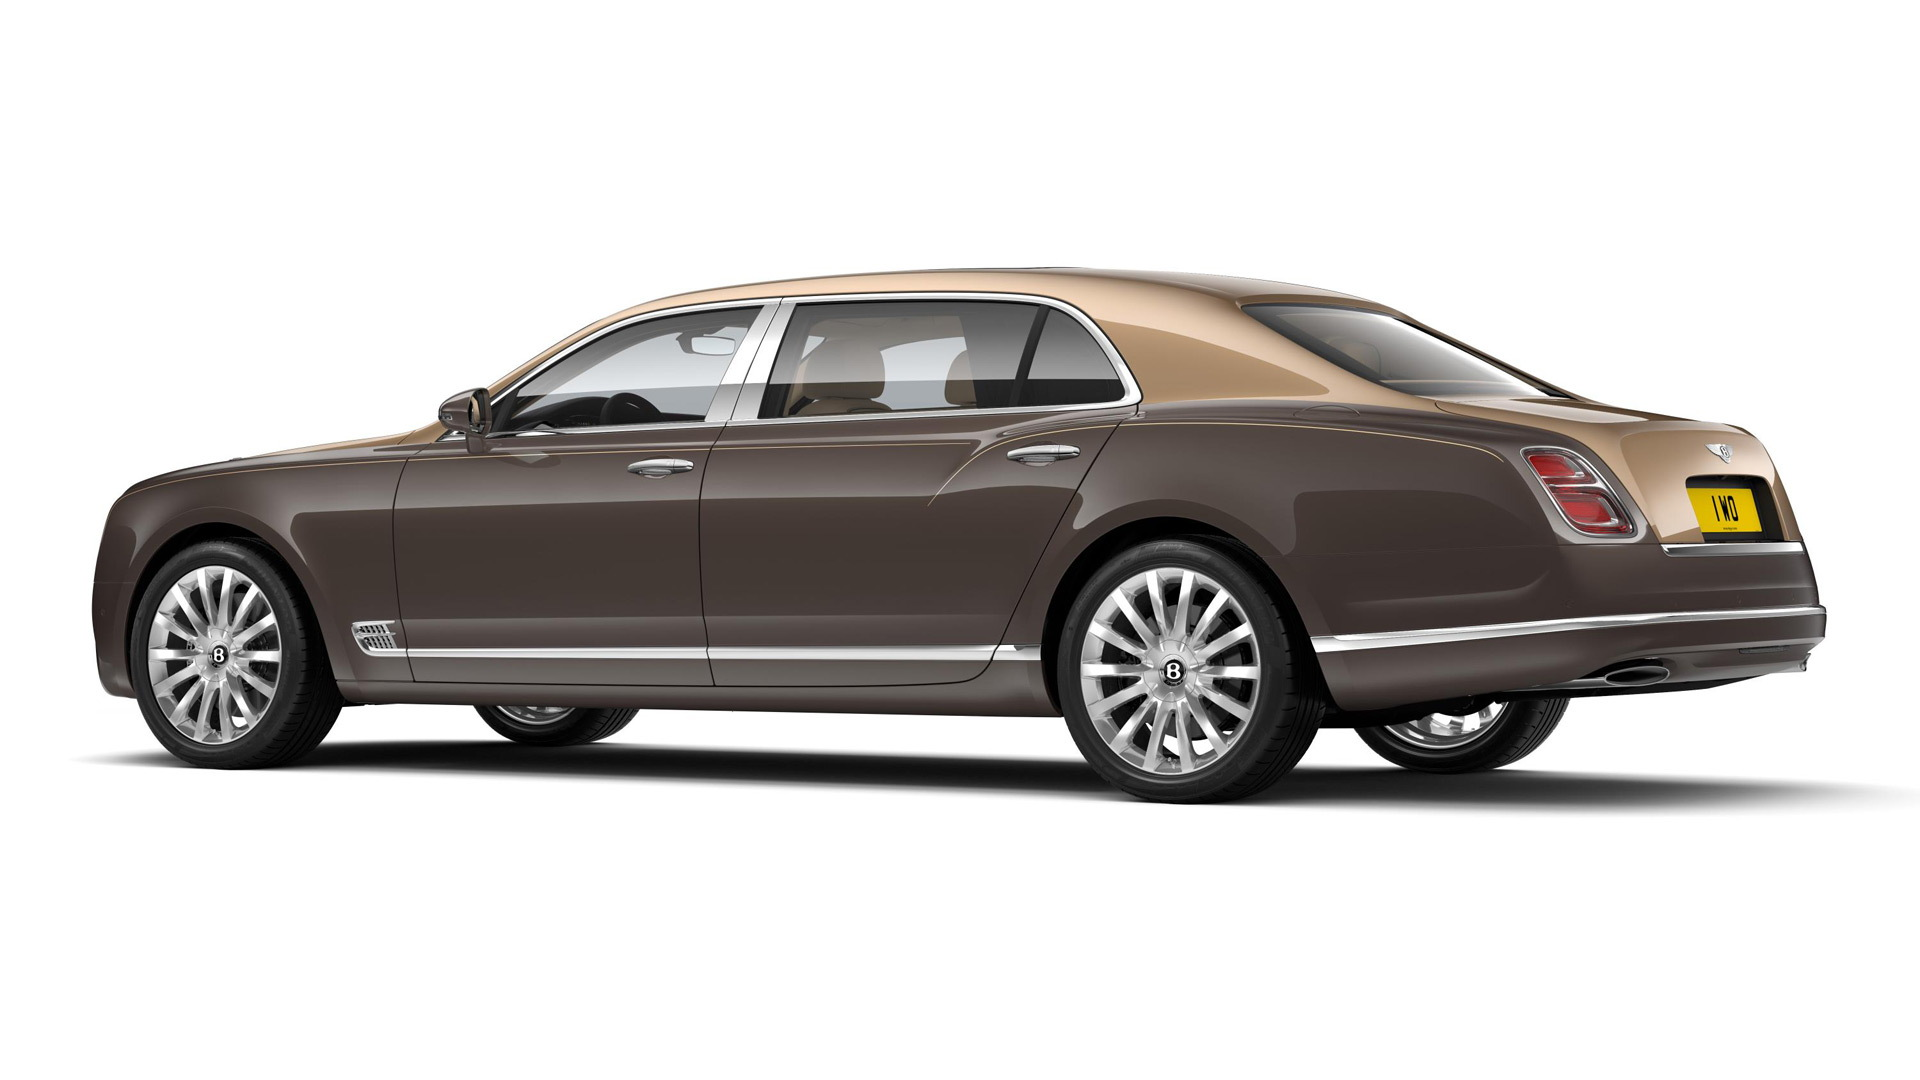 2017 Bentley Mulsanne Extended Wheelbase First Edition